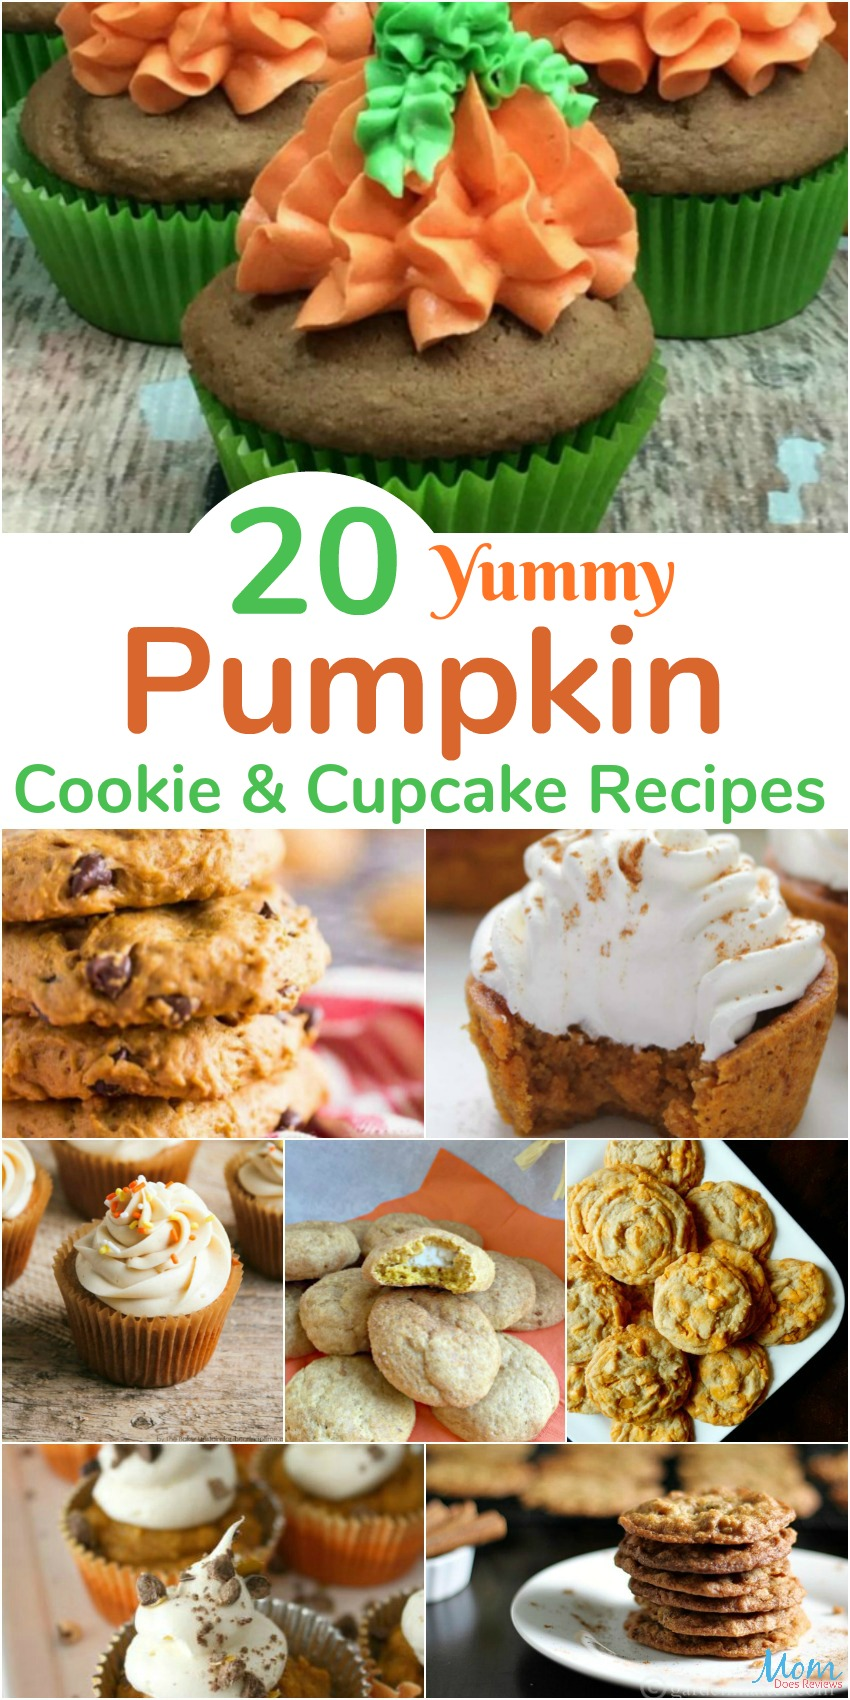 20 Yummy Pumpkin Cookie & Cupcake Recipes You Have to Make banner